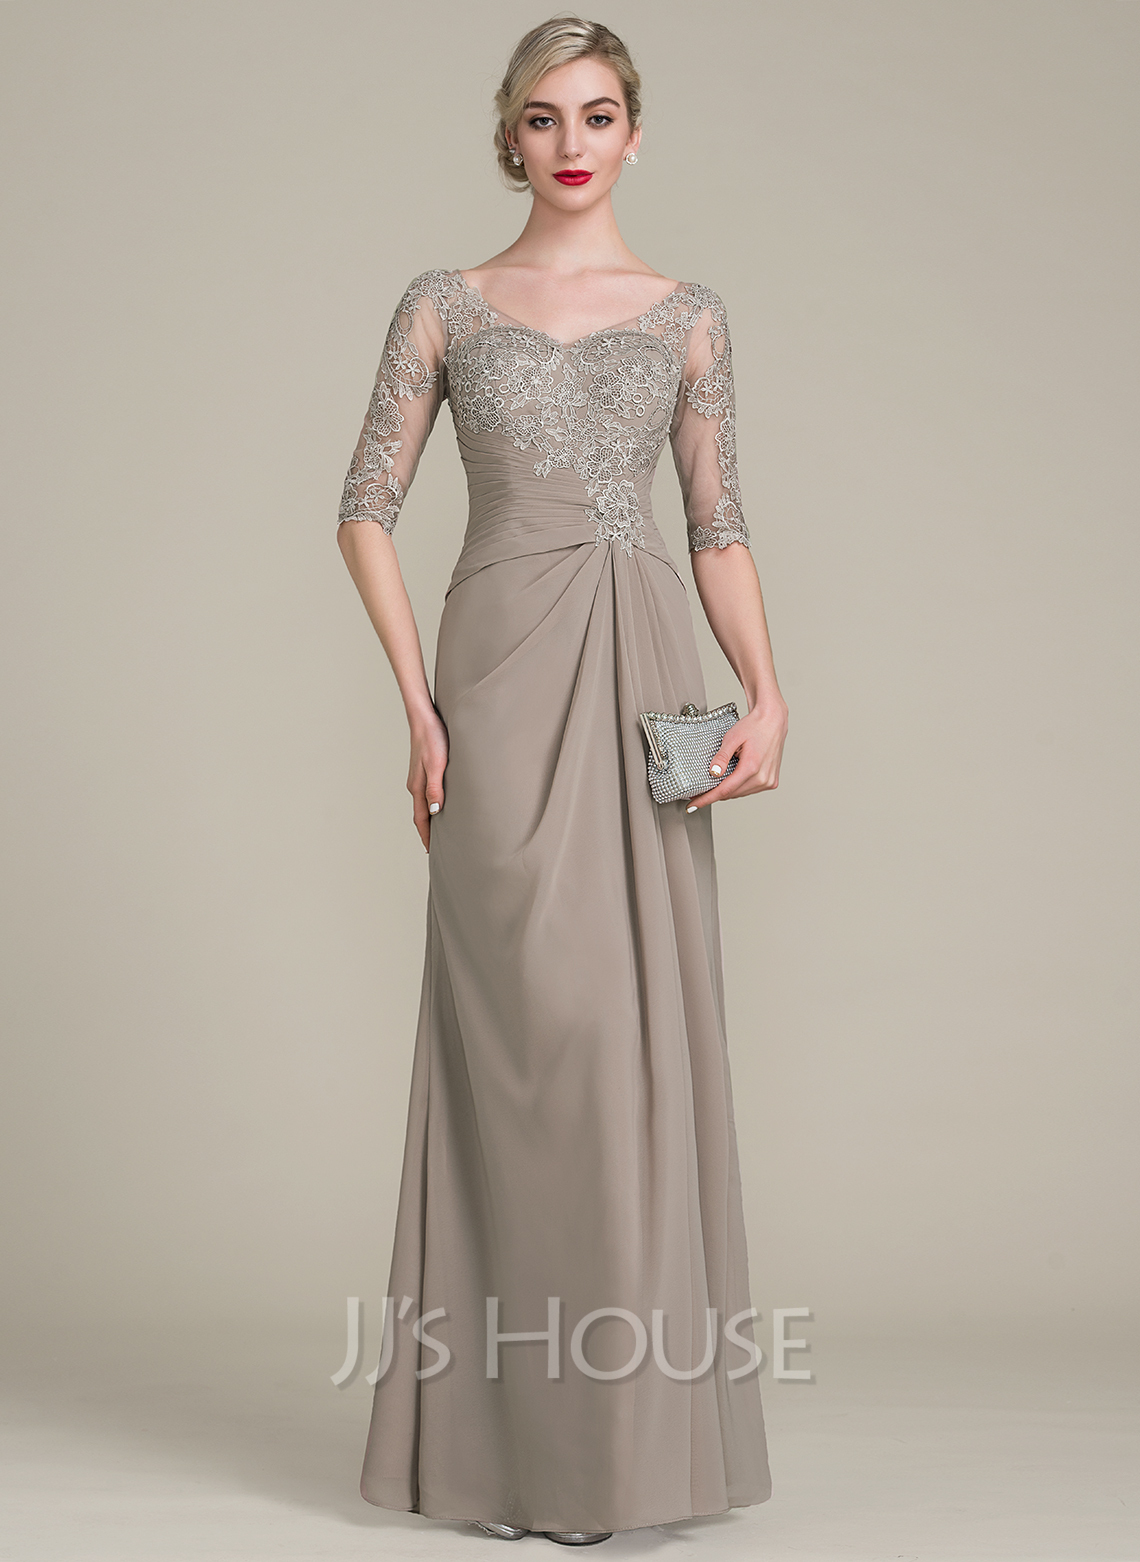 A-Line V-neck Floor-Length Chiffon Lace Mother of the Bride Dress With Ruffle